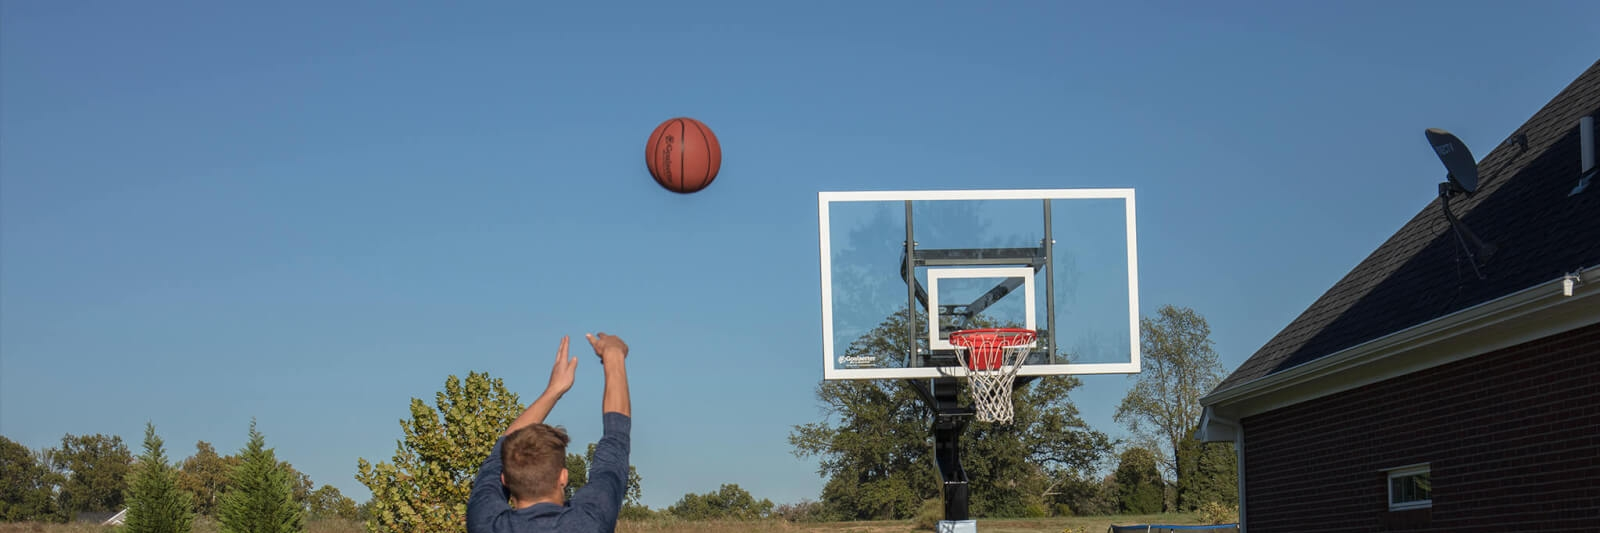 Goalsetter Outdoor Basketball Hoop